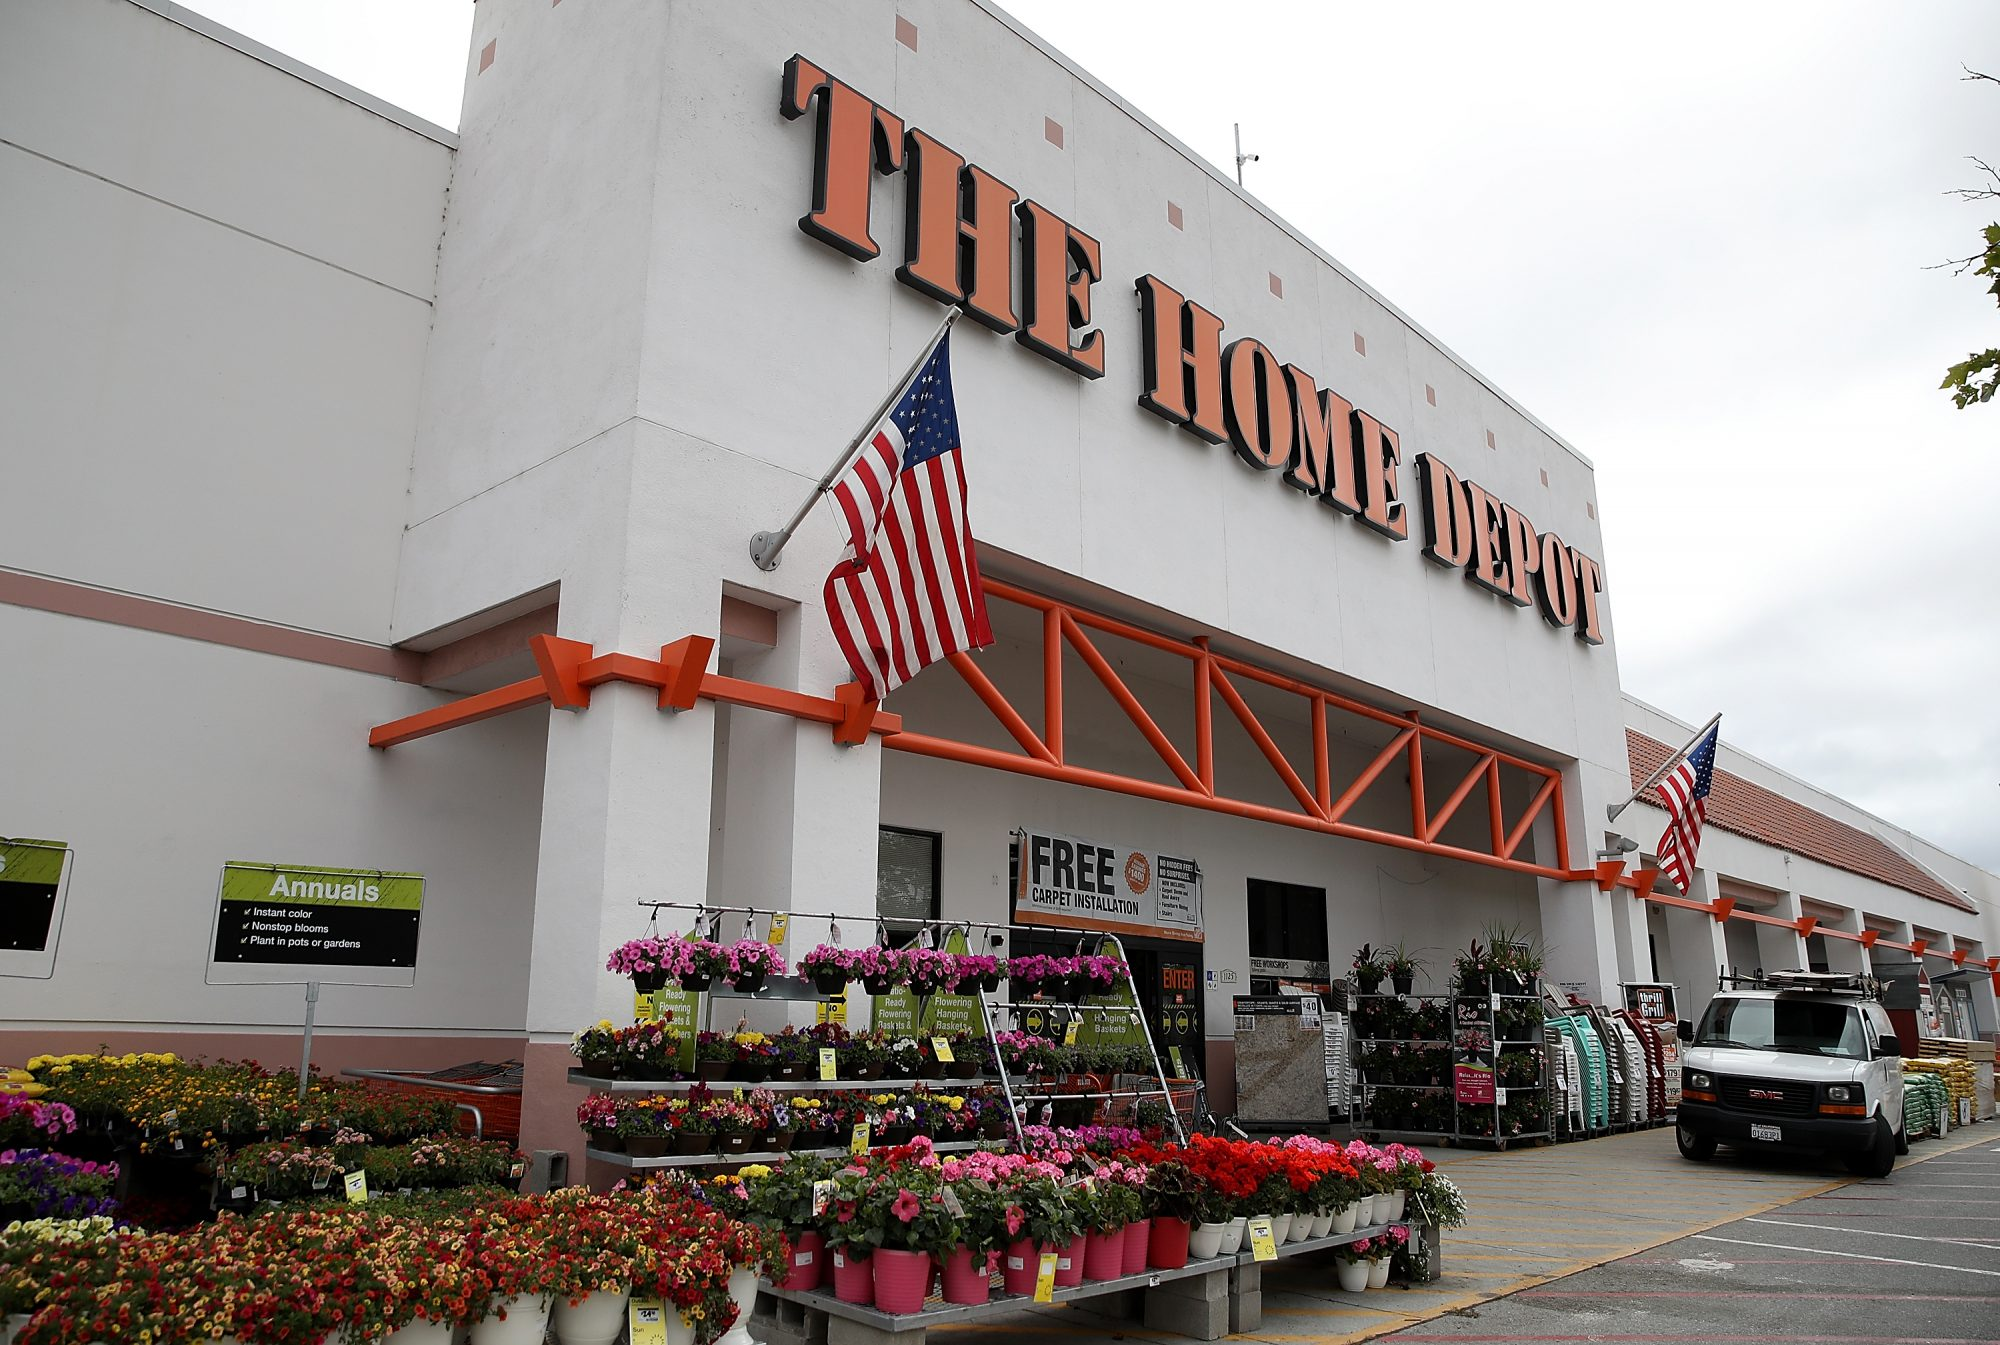 Home Depot and Lowe's Memorial Day 2018 Sales Already Started and the Deals Are Awesome